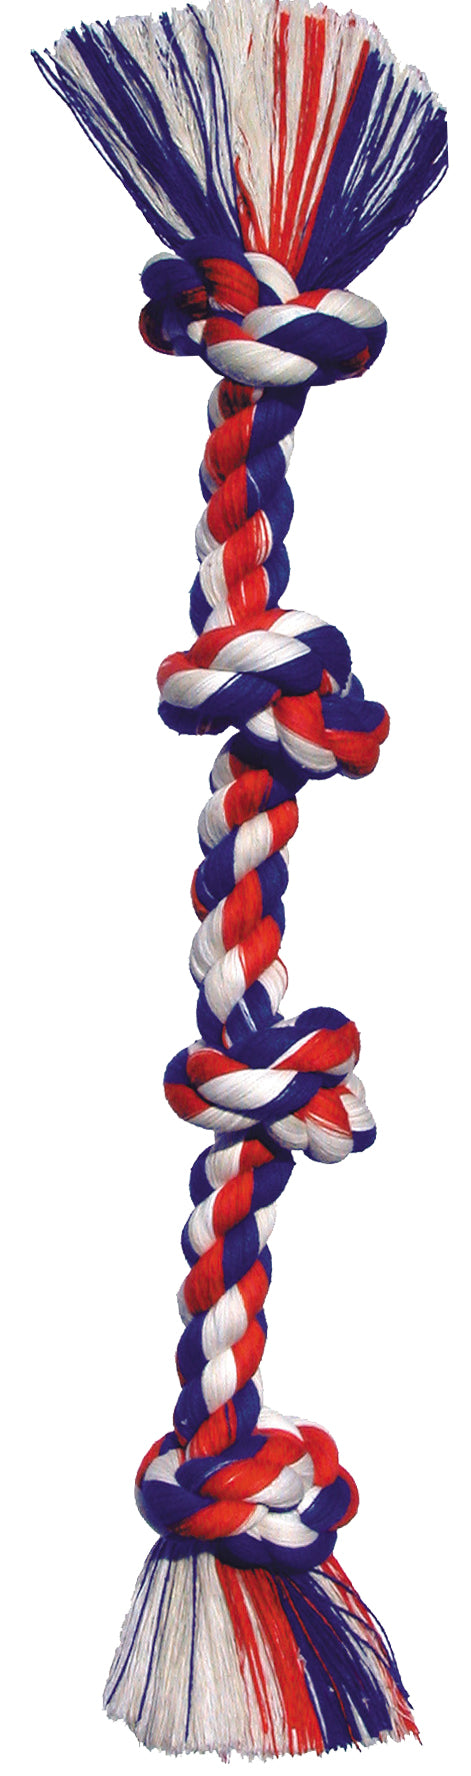 Mammoth Flossy Chews 4 knot Tugs Color Rope Large Dog Toys 27 Inch